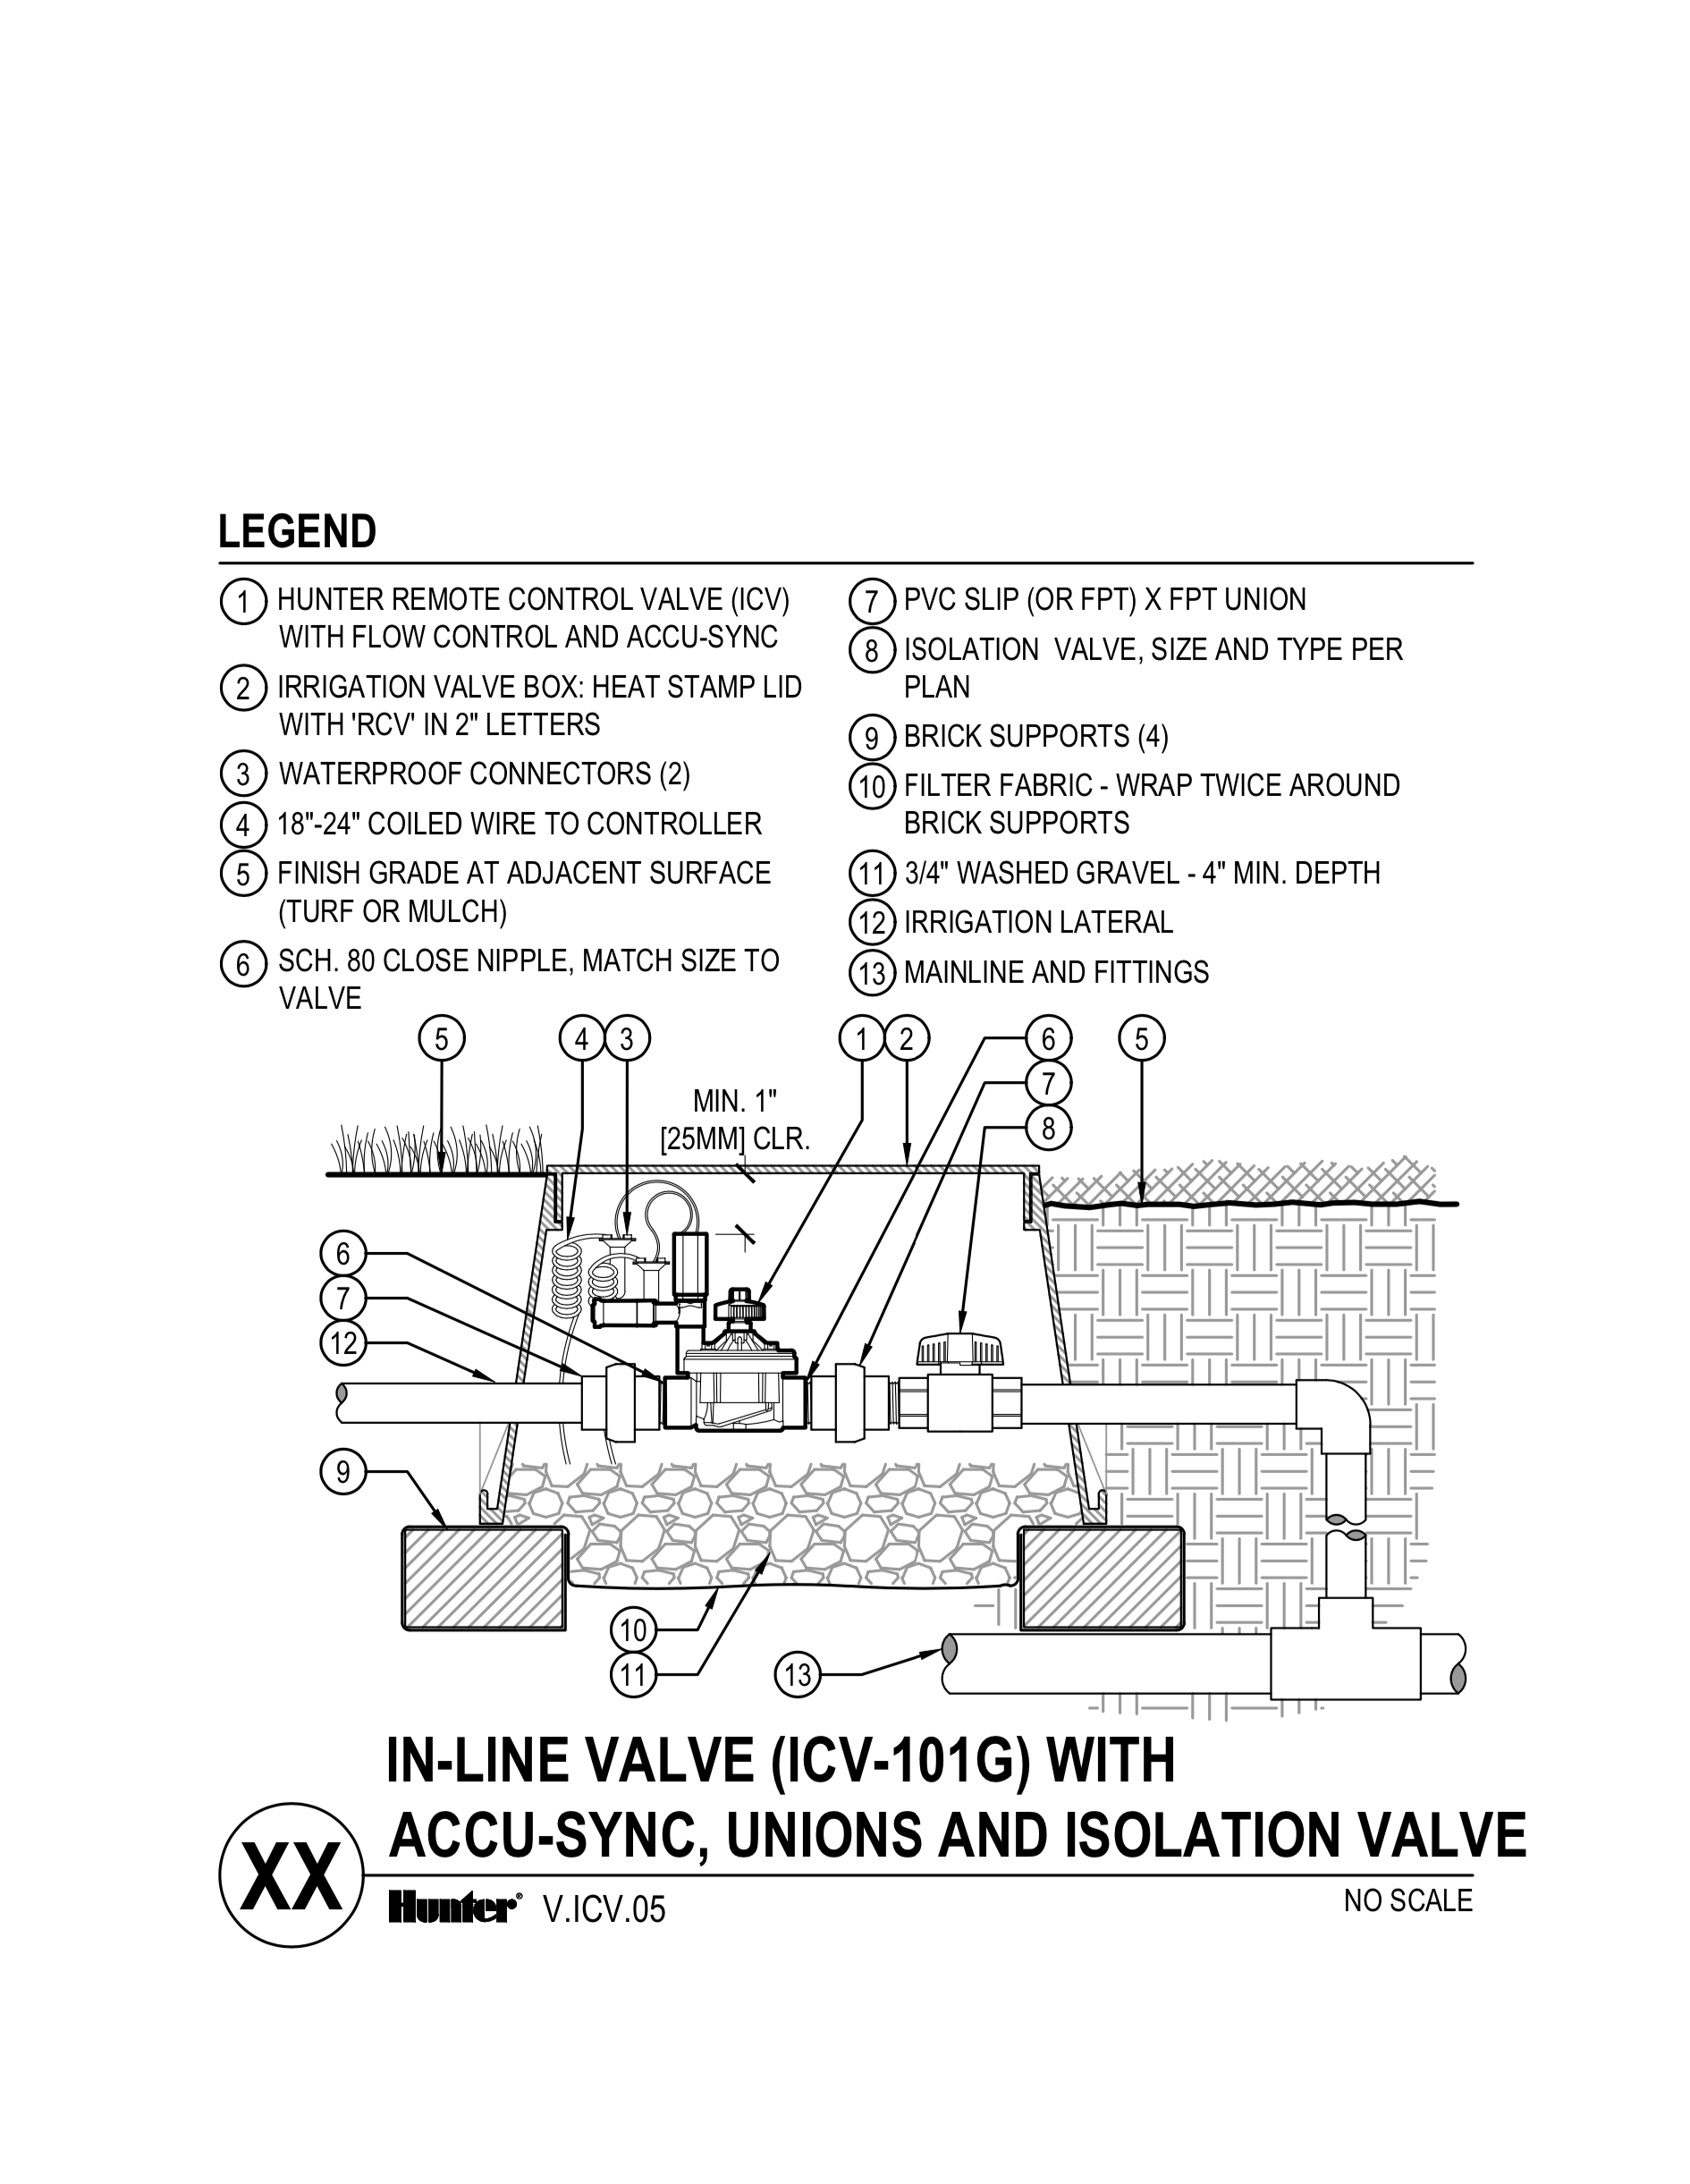 CAD - ICV-101G With Accu Sync